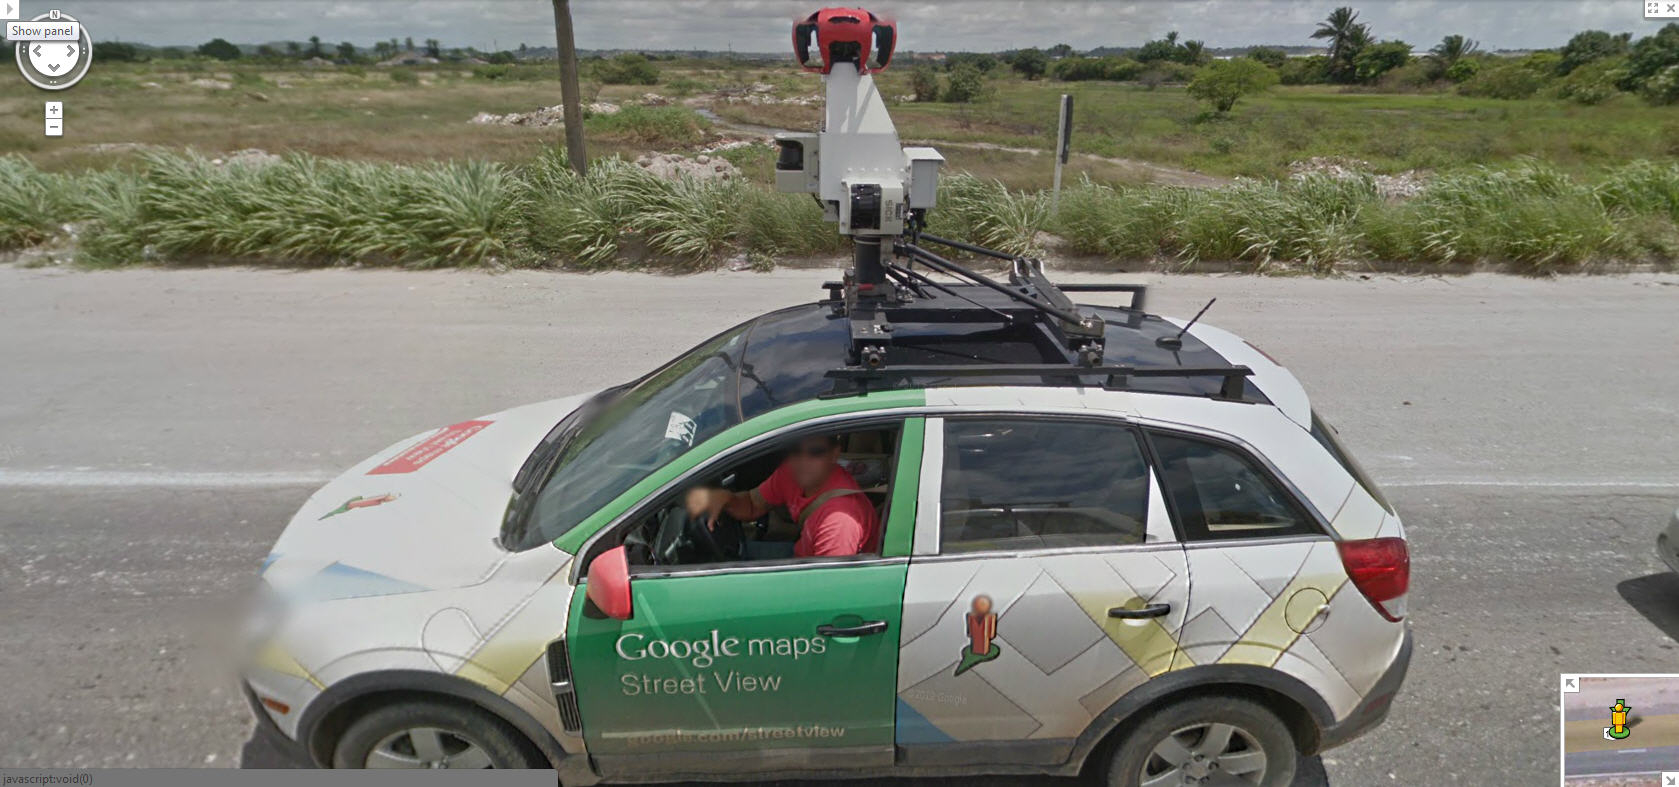 another-awesome-picture-of-the-google-street-view-driver-and-car-on-a-brazilian-highway--